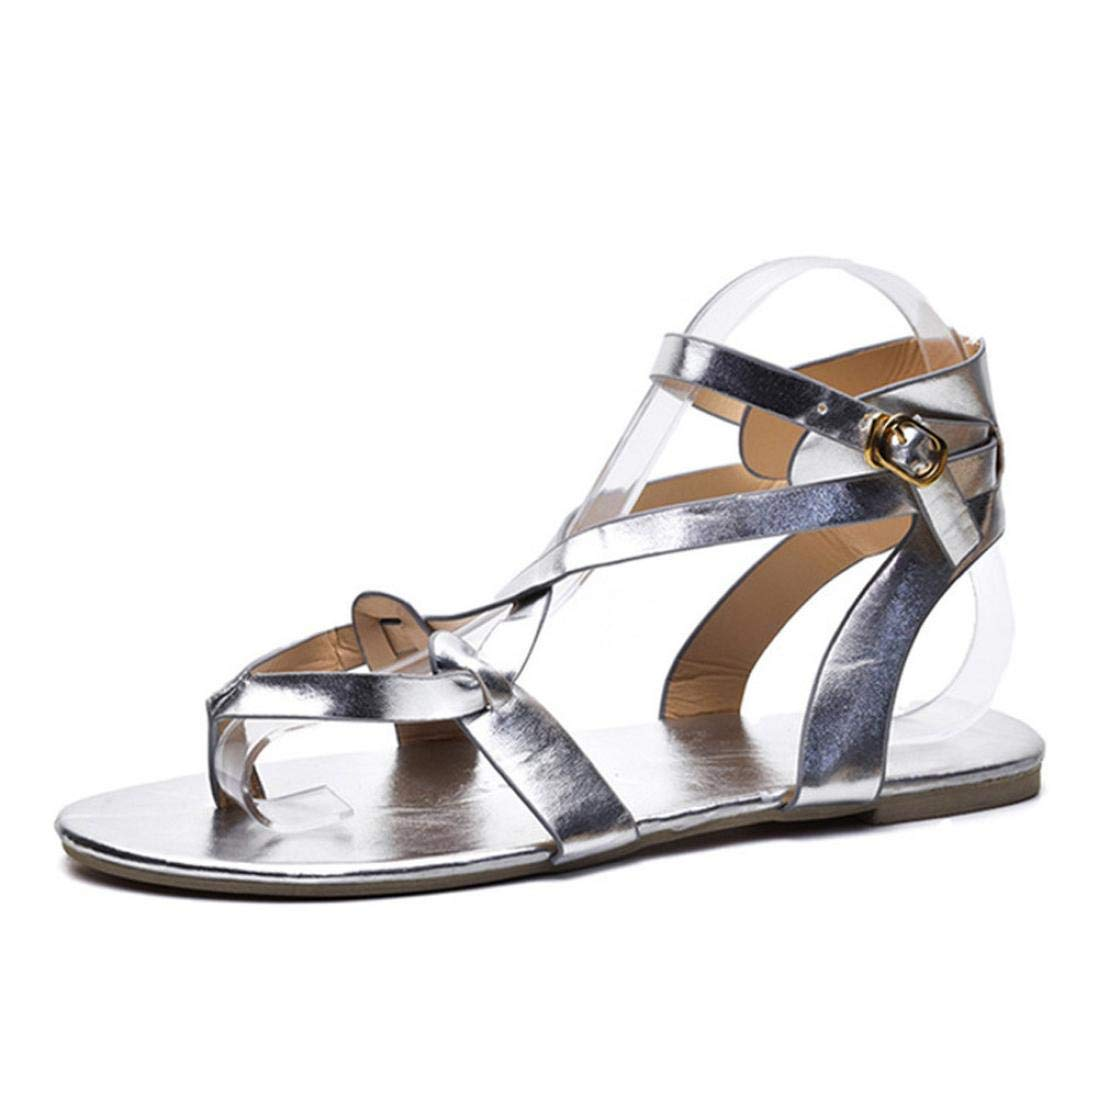 Women Buttoned Sandals,Summer Ladies Sandals Cross Strap Flat Ankle Roman Casual Shoes Beach Sandals (US:9, Silver) by BeautyVan-- (Image #3)